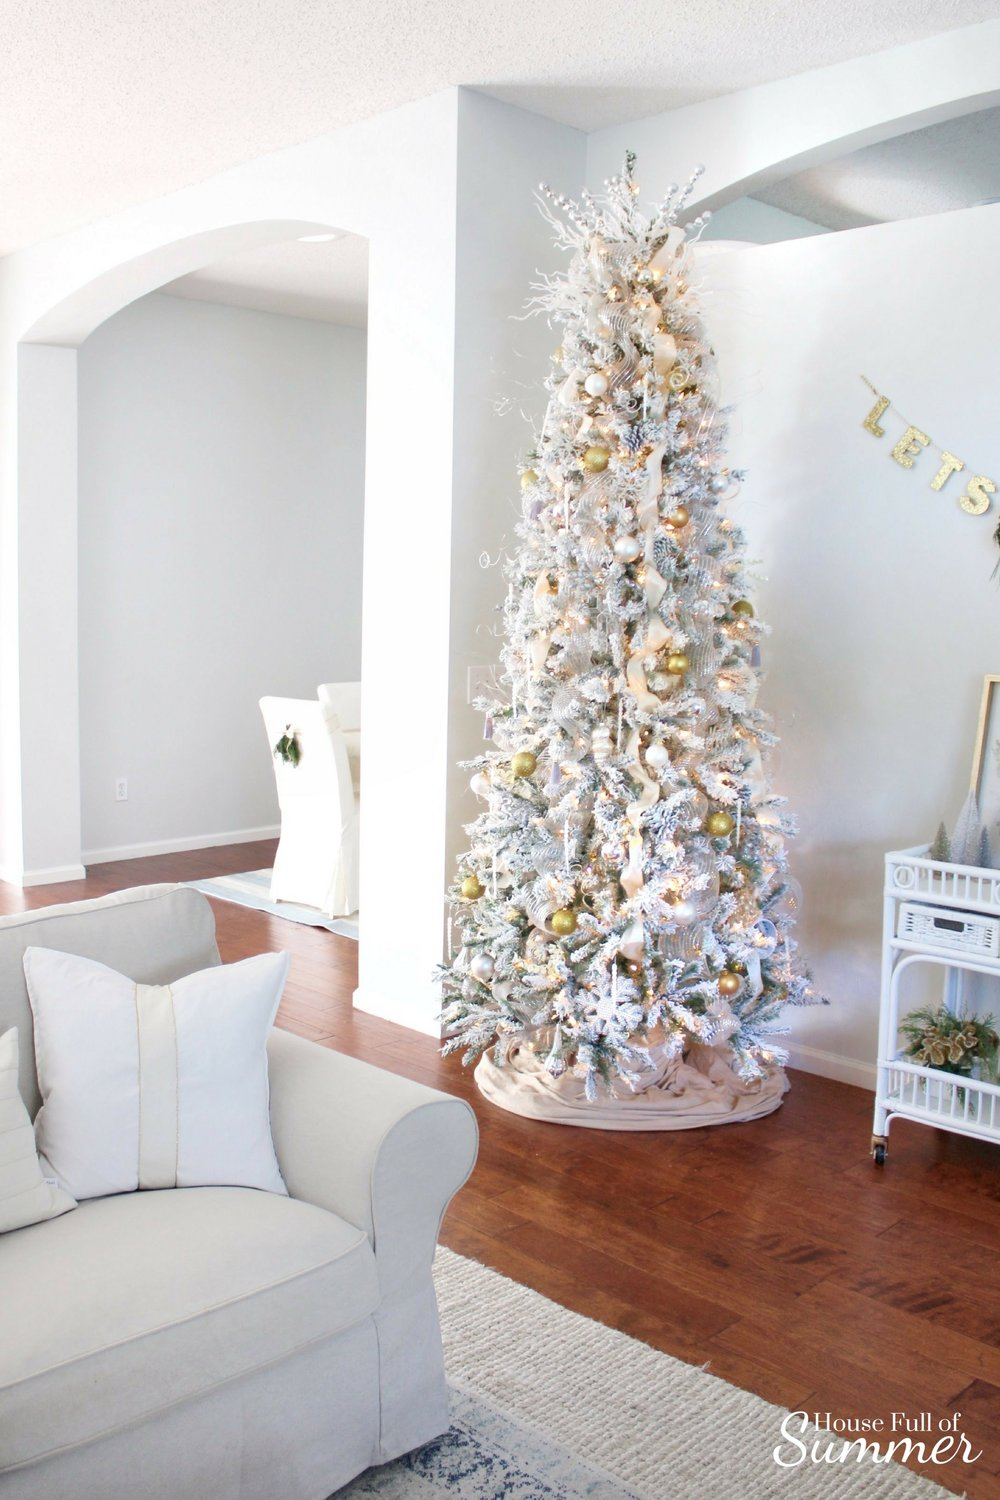 Christmas Home Tour | House Full of Summer blog hop - Cheerful Christmas Home Tourcoastal christmas neutral christmas decor, holiday home tour, florida christmas, living room, gold and silver christmas tree